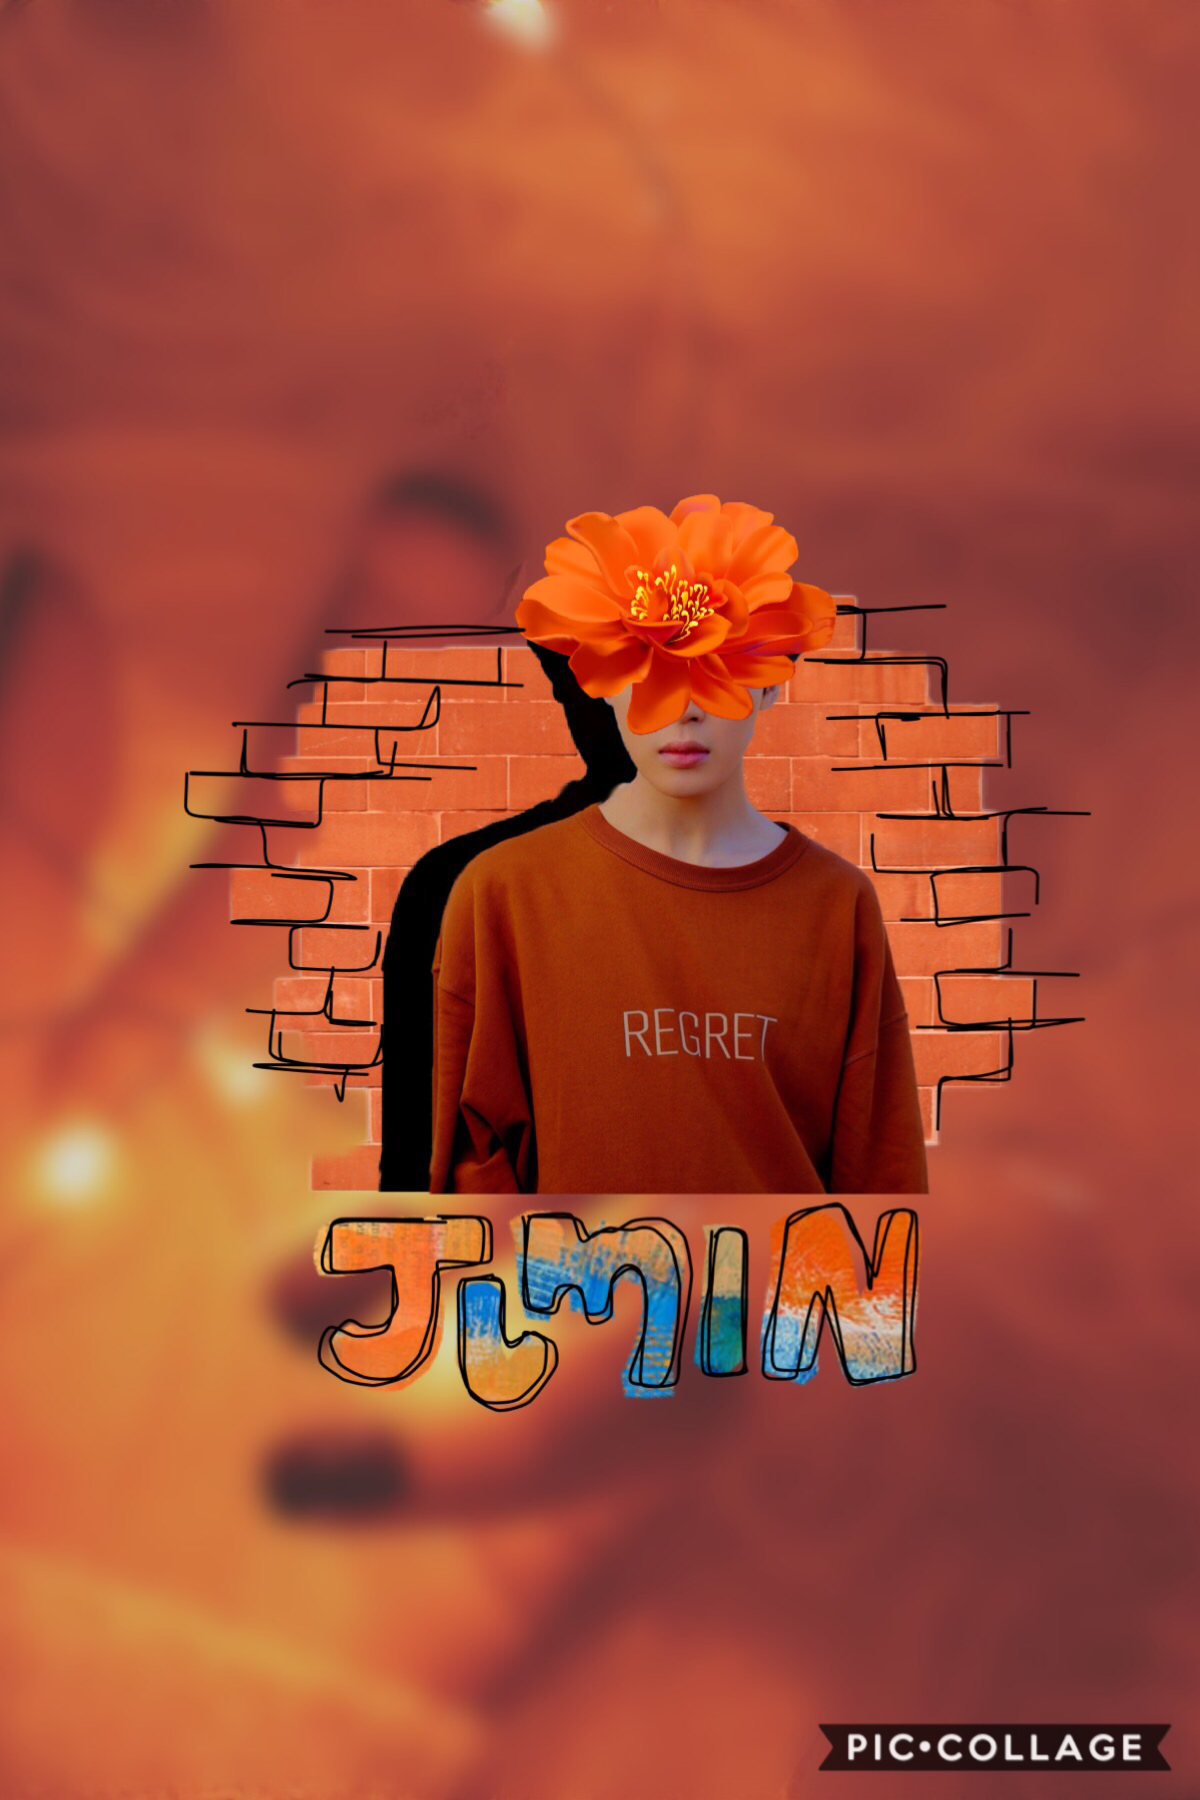 """Tap frieeeeens  Let's resurrect this account 😂  This is the initial version of a collaboration edit on my main 🧡🧡  QOTD: what's a fun fact that blew your mind?  AOTD: I just noticed """"AOTD:"""" has a sad face in it (D:)  🤯"""